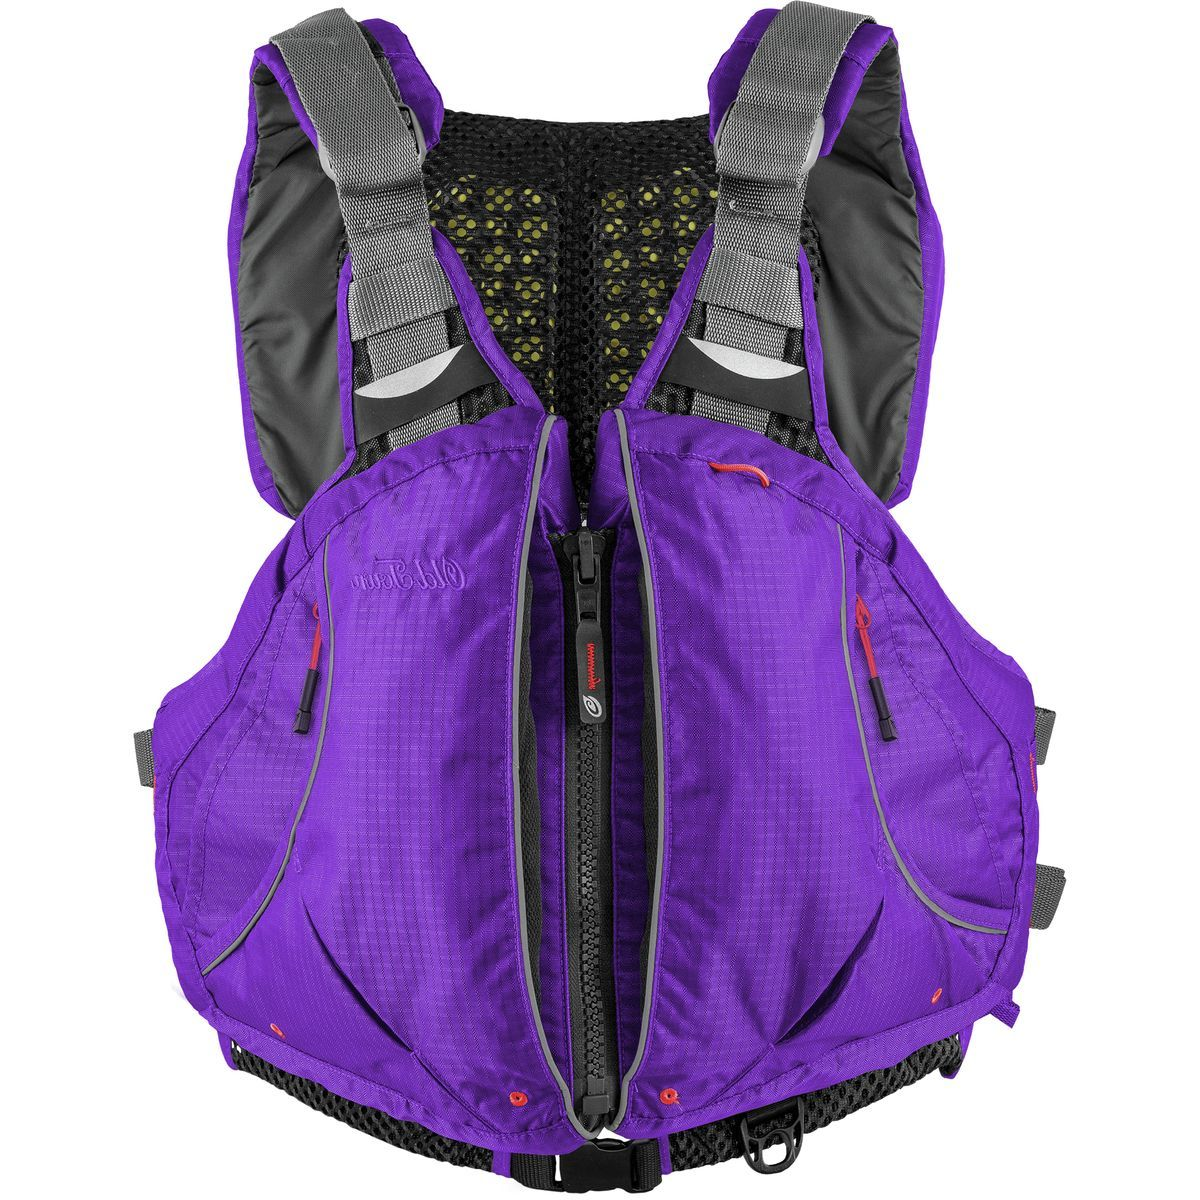 Old Town Solitude Personal Flotation Device - Women's